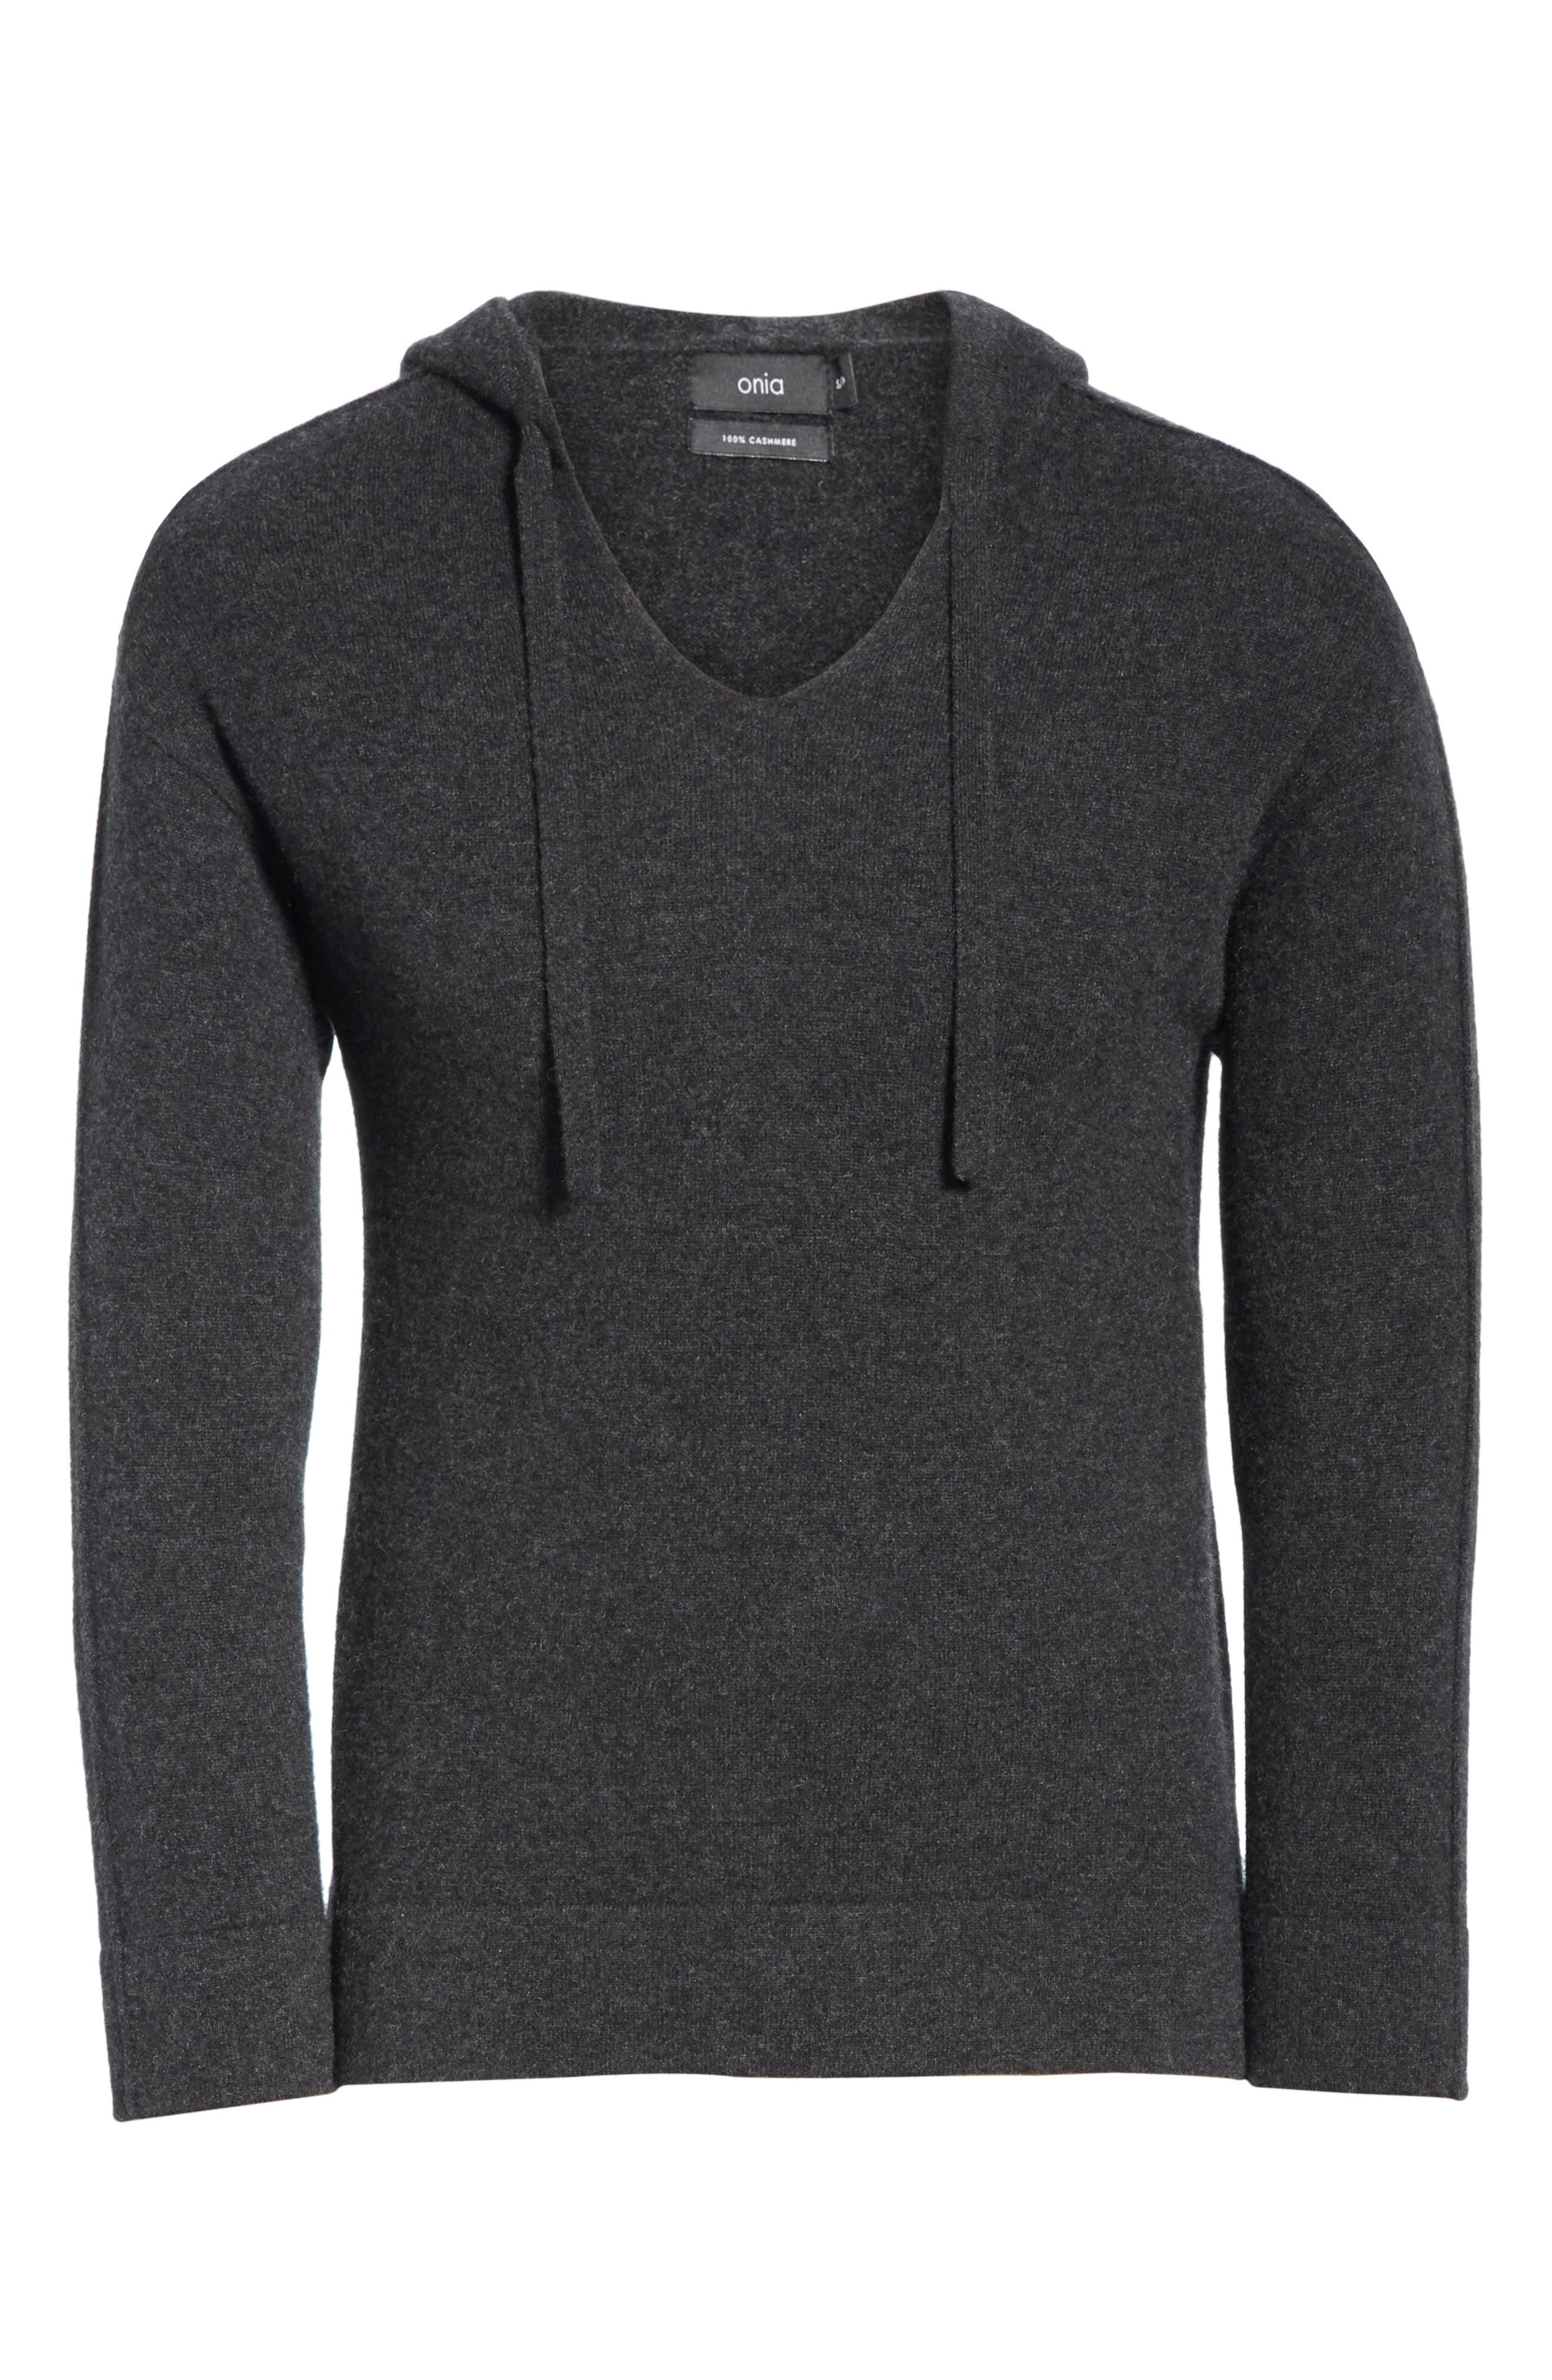 Jamie Sunset Cashmere Hooded Sweater,                             Alternate thumbnail 6, color,                             CHARCOAL